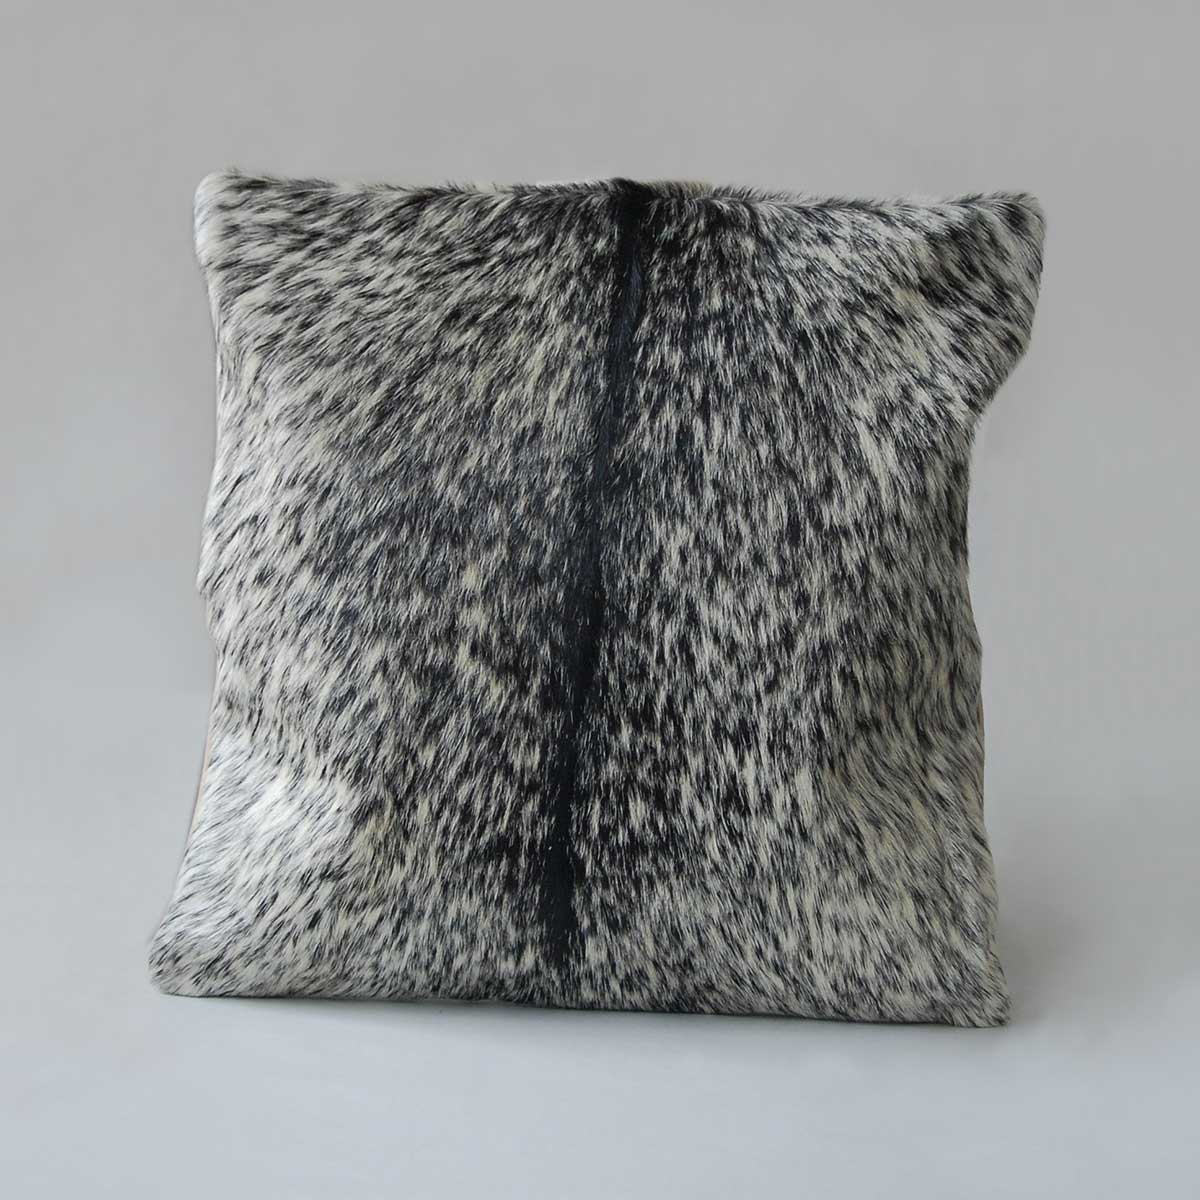 Pillow-grey-01-1200x1200